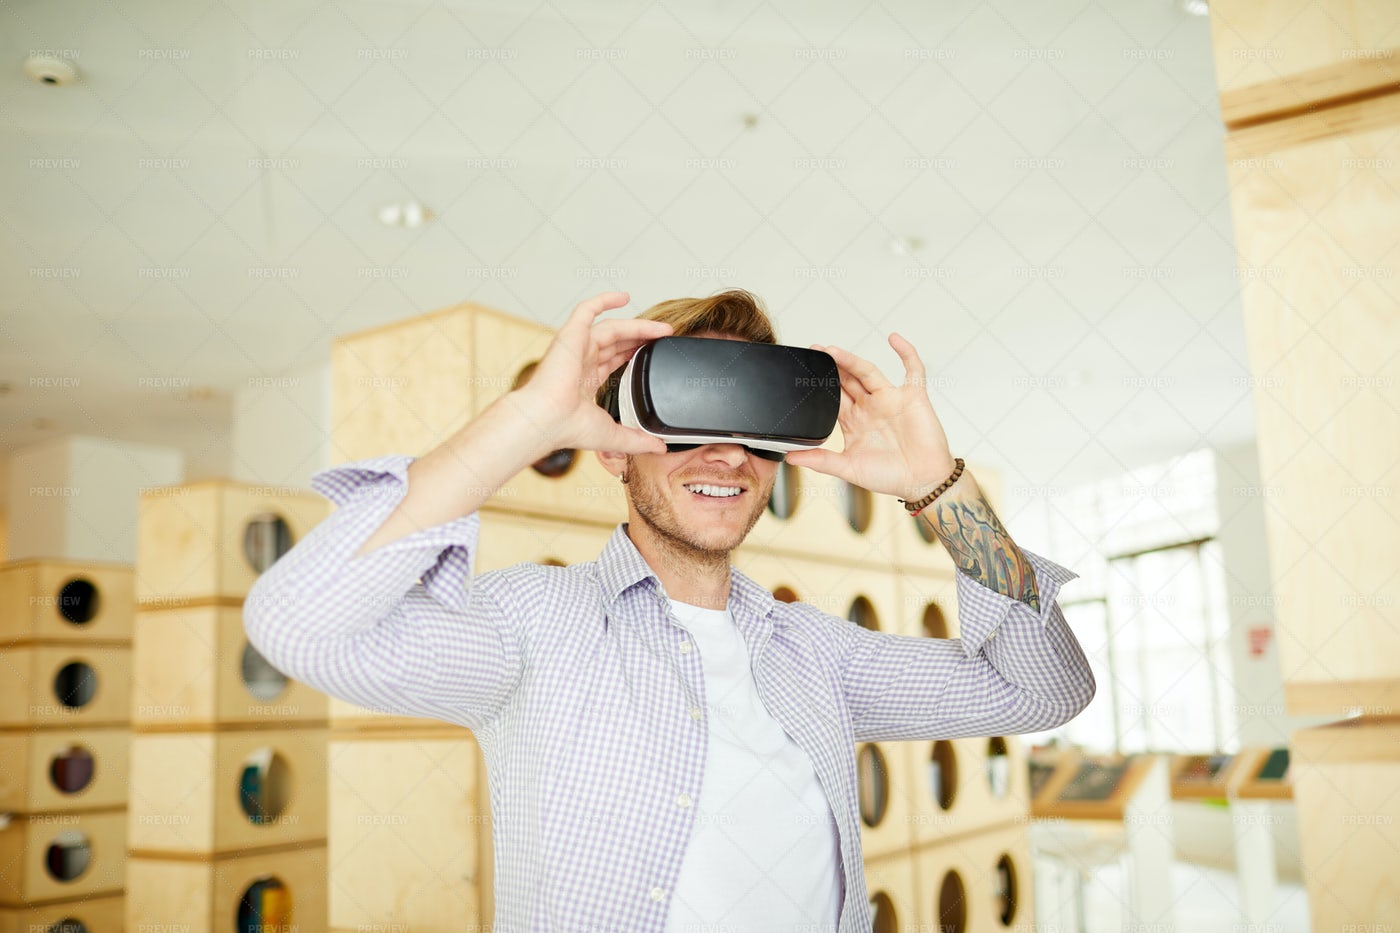 Adjusting Virtual Reality Headset: Stock Photos